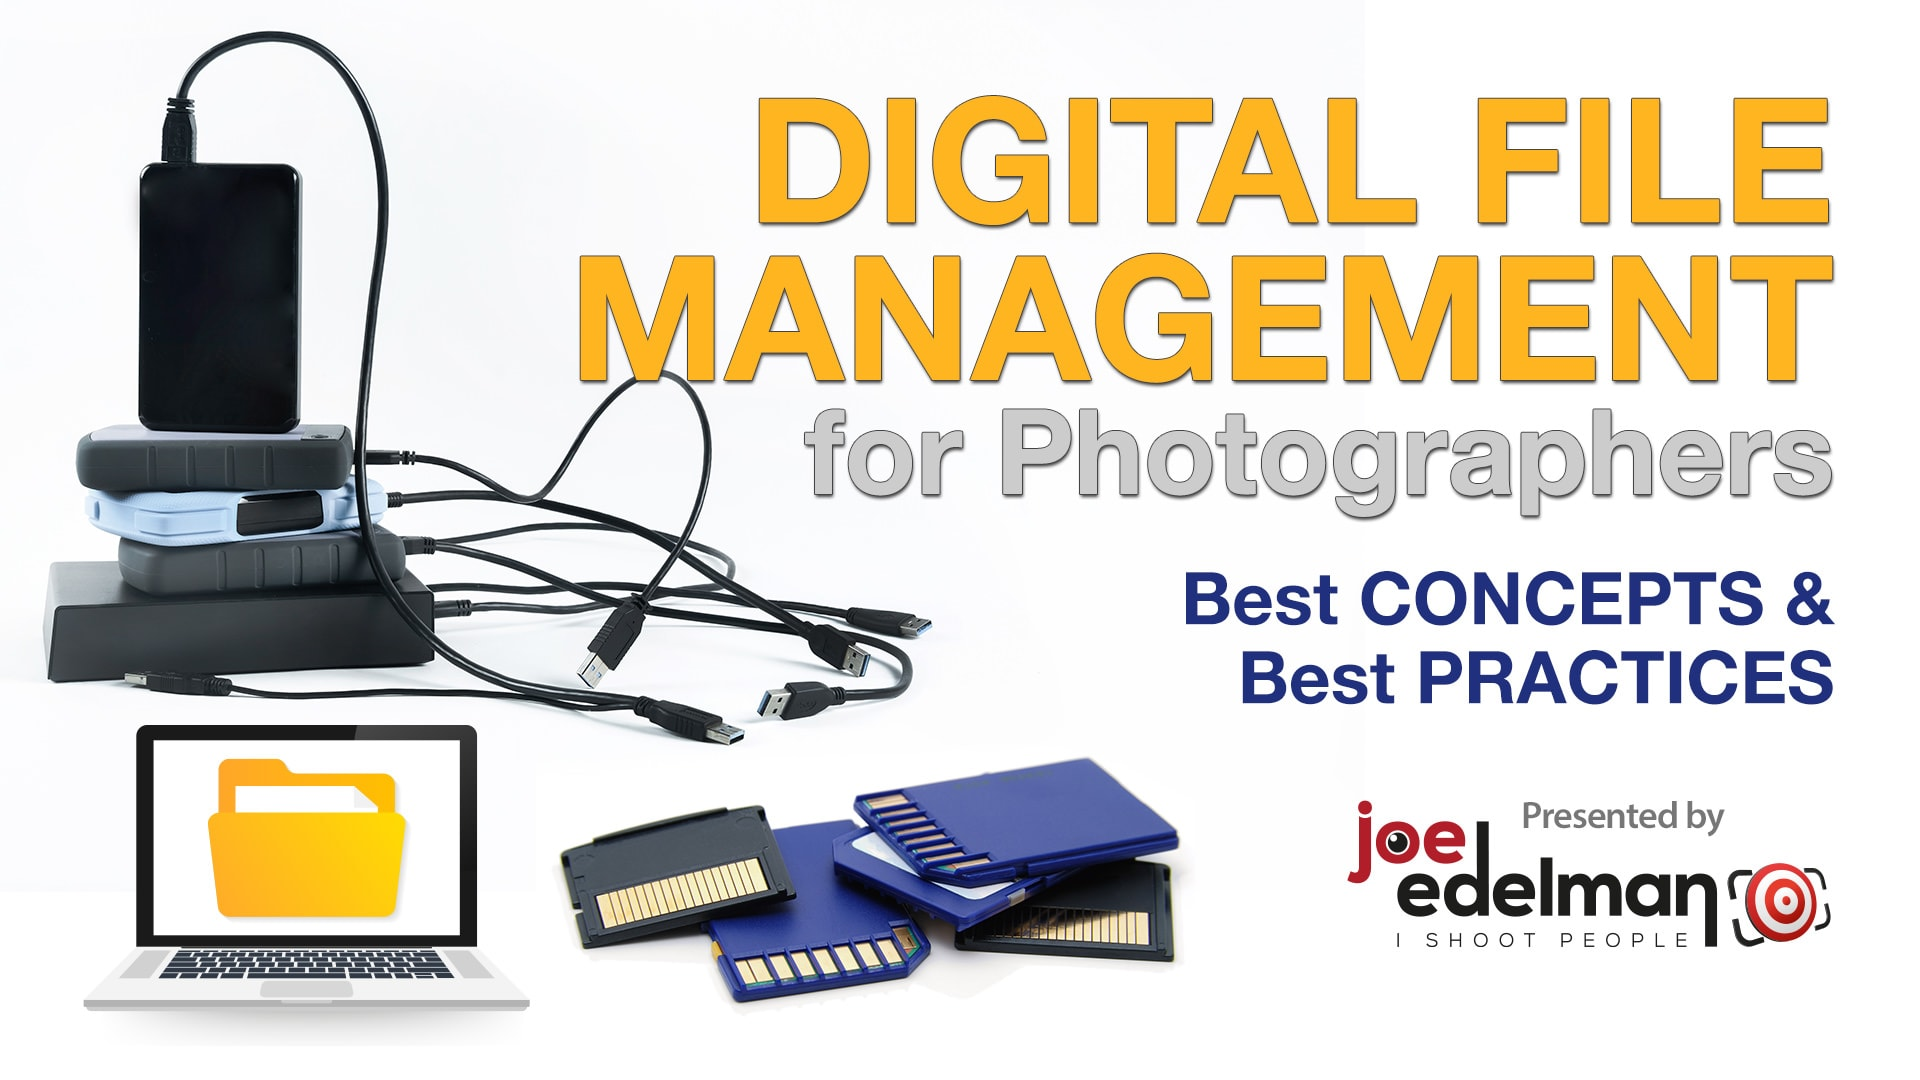 File Management for Photographers